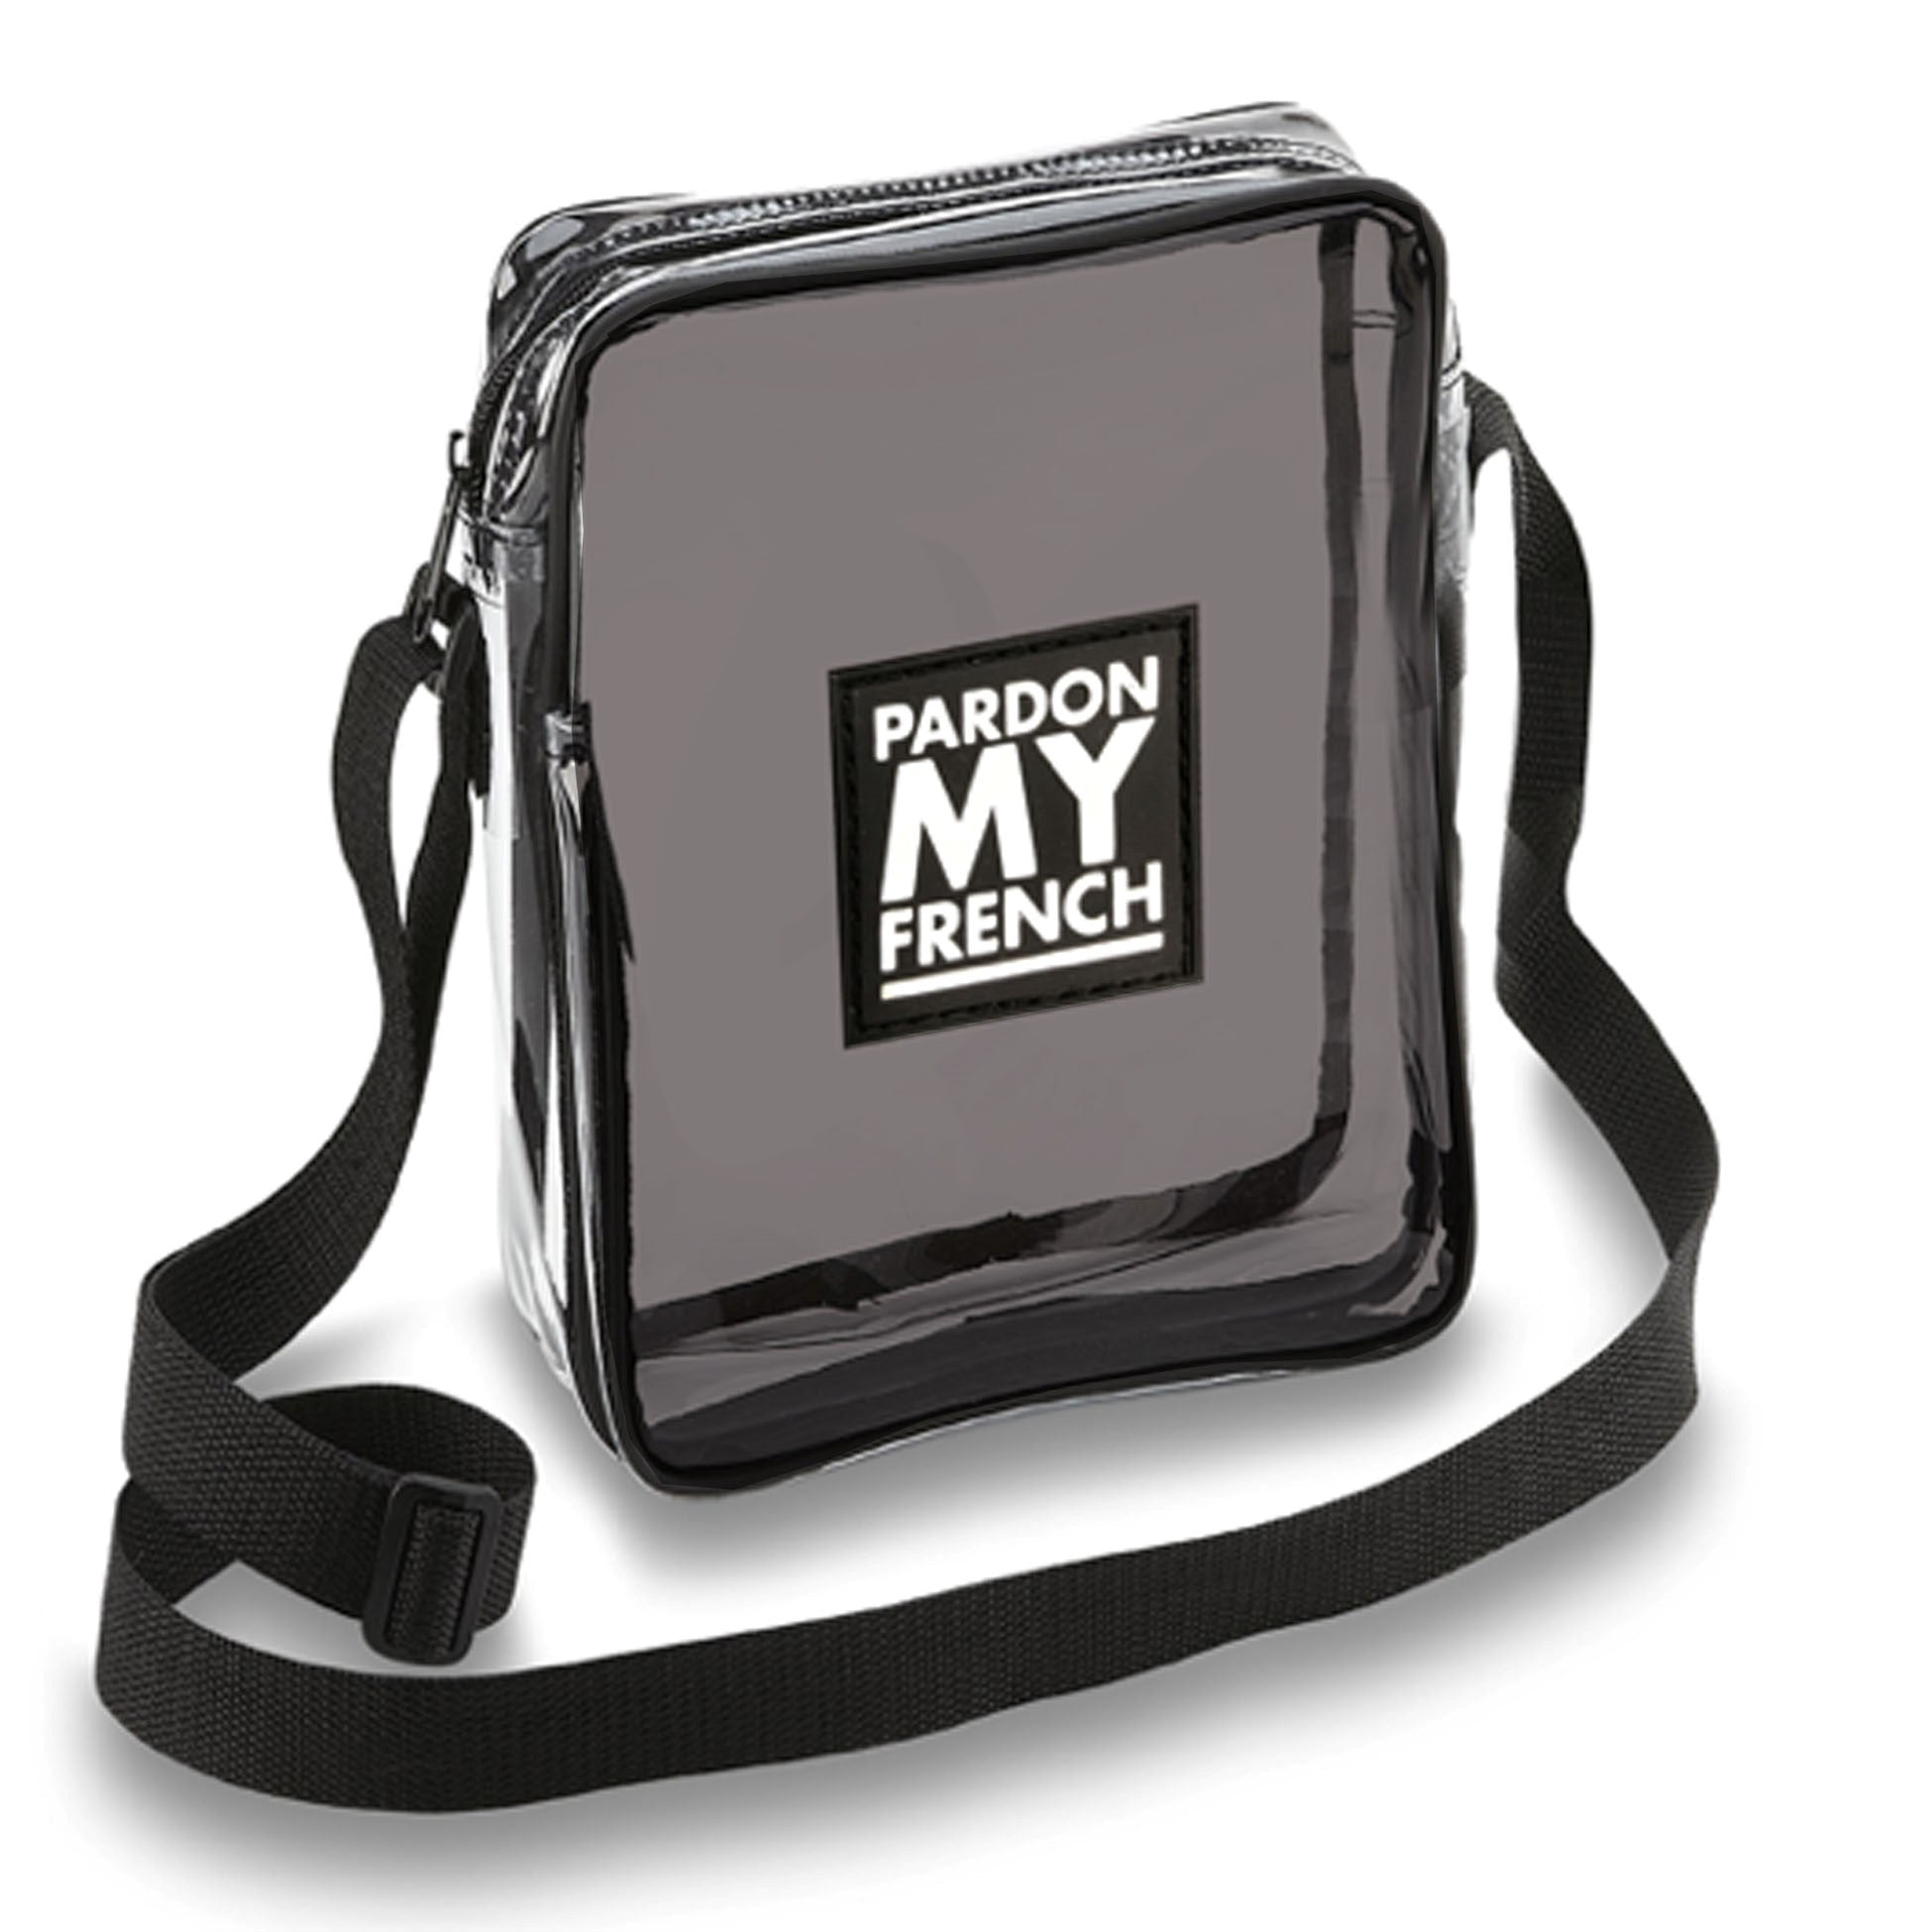 PARDON MY FRENCH CLEAR CROSSBODY BAG